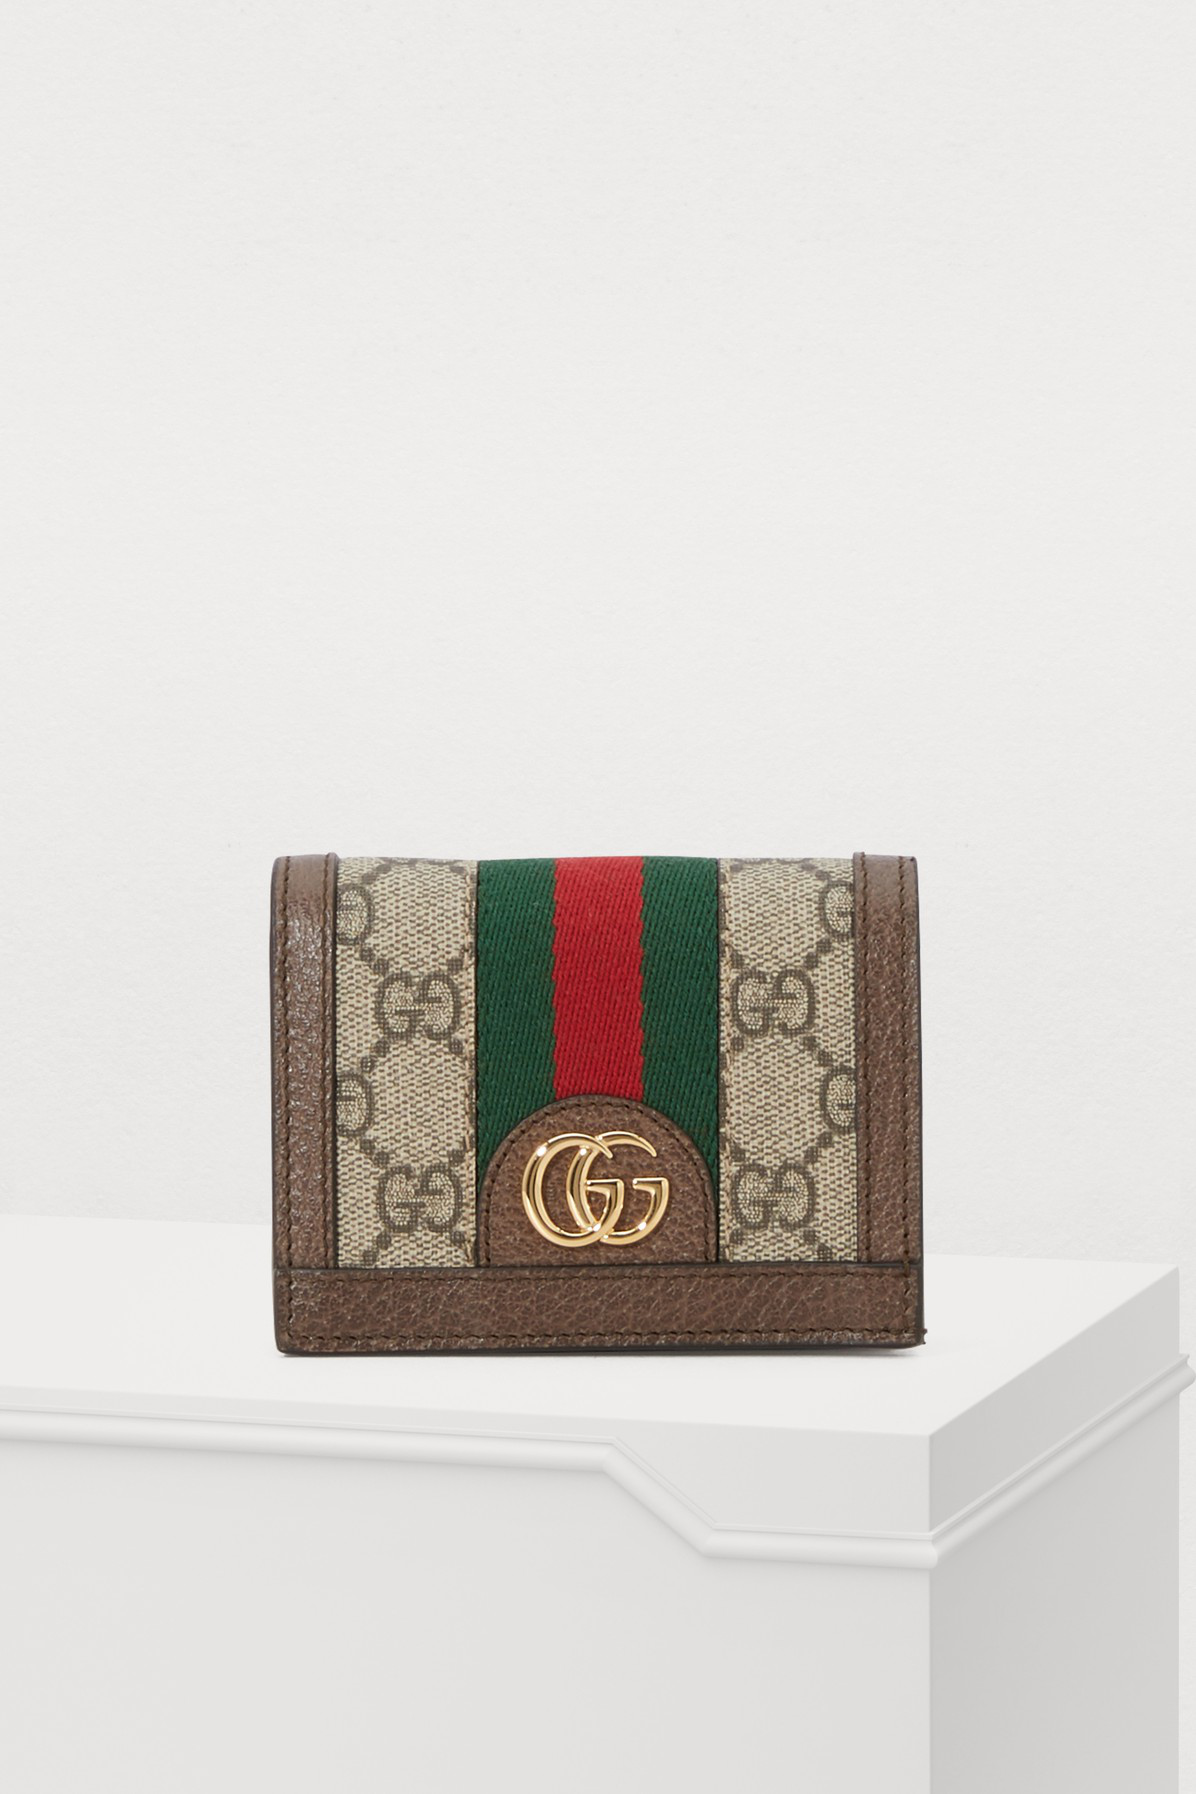 239b2393815590 Gucci Ophidia Gg Supreme Leather Wallet In Neutrals | ModeSens